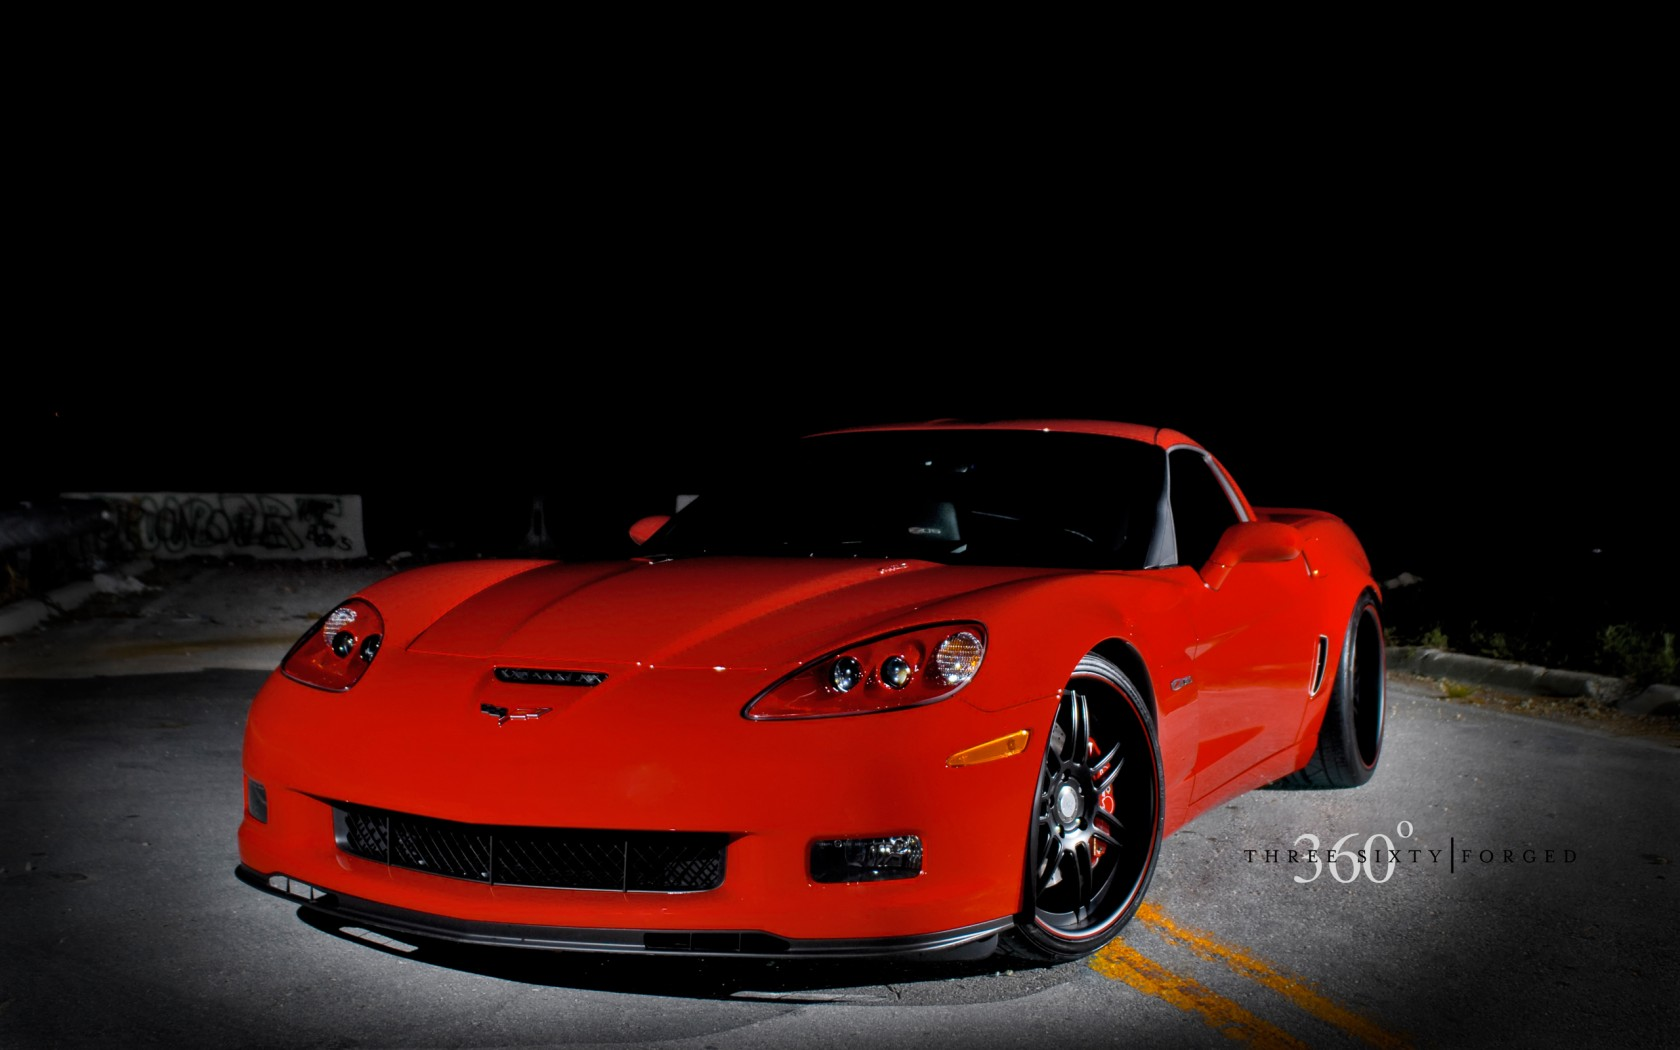 Jaguar Land Rover >> Corvette Z06 360 Forged Wheels Wallpaper | HD Car ...